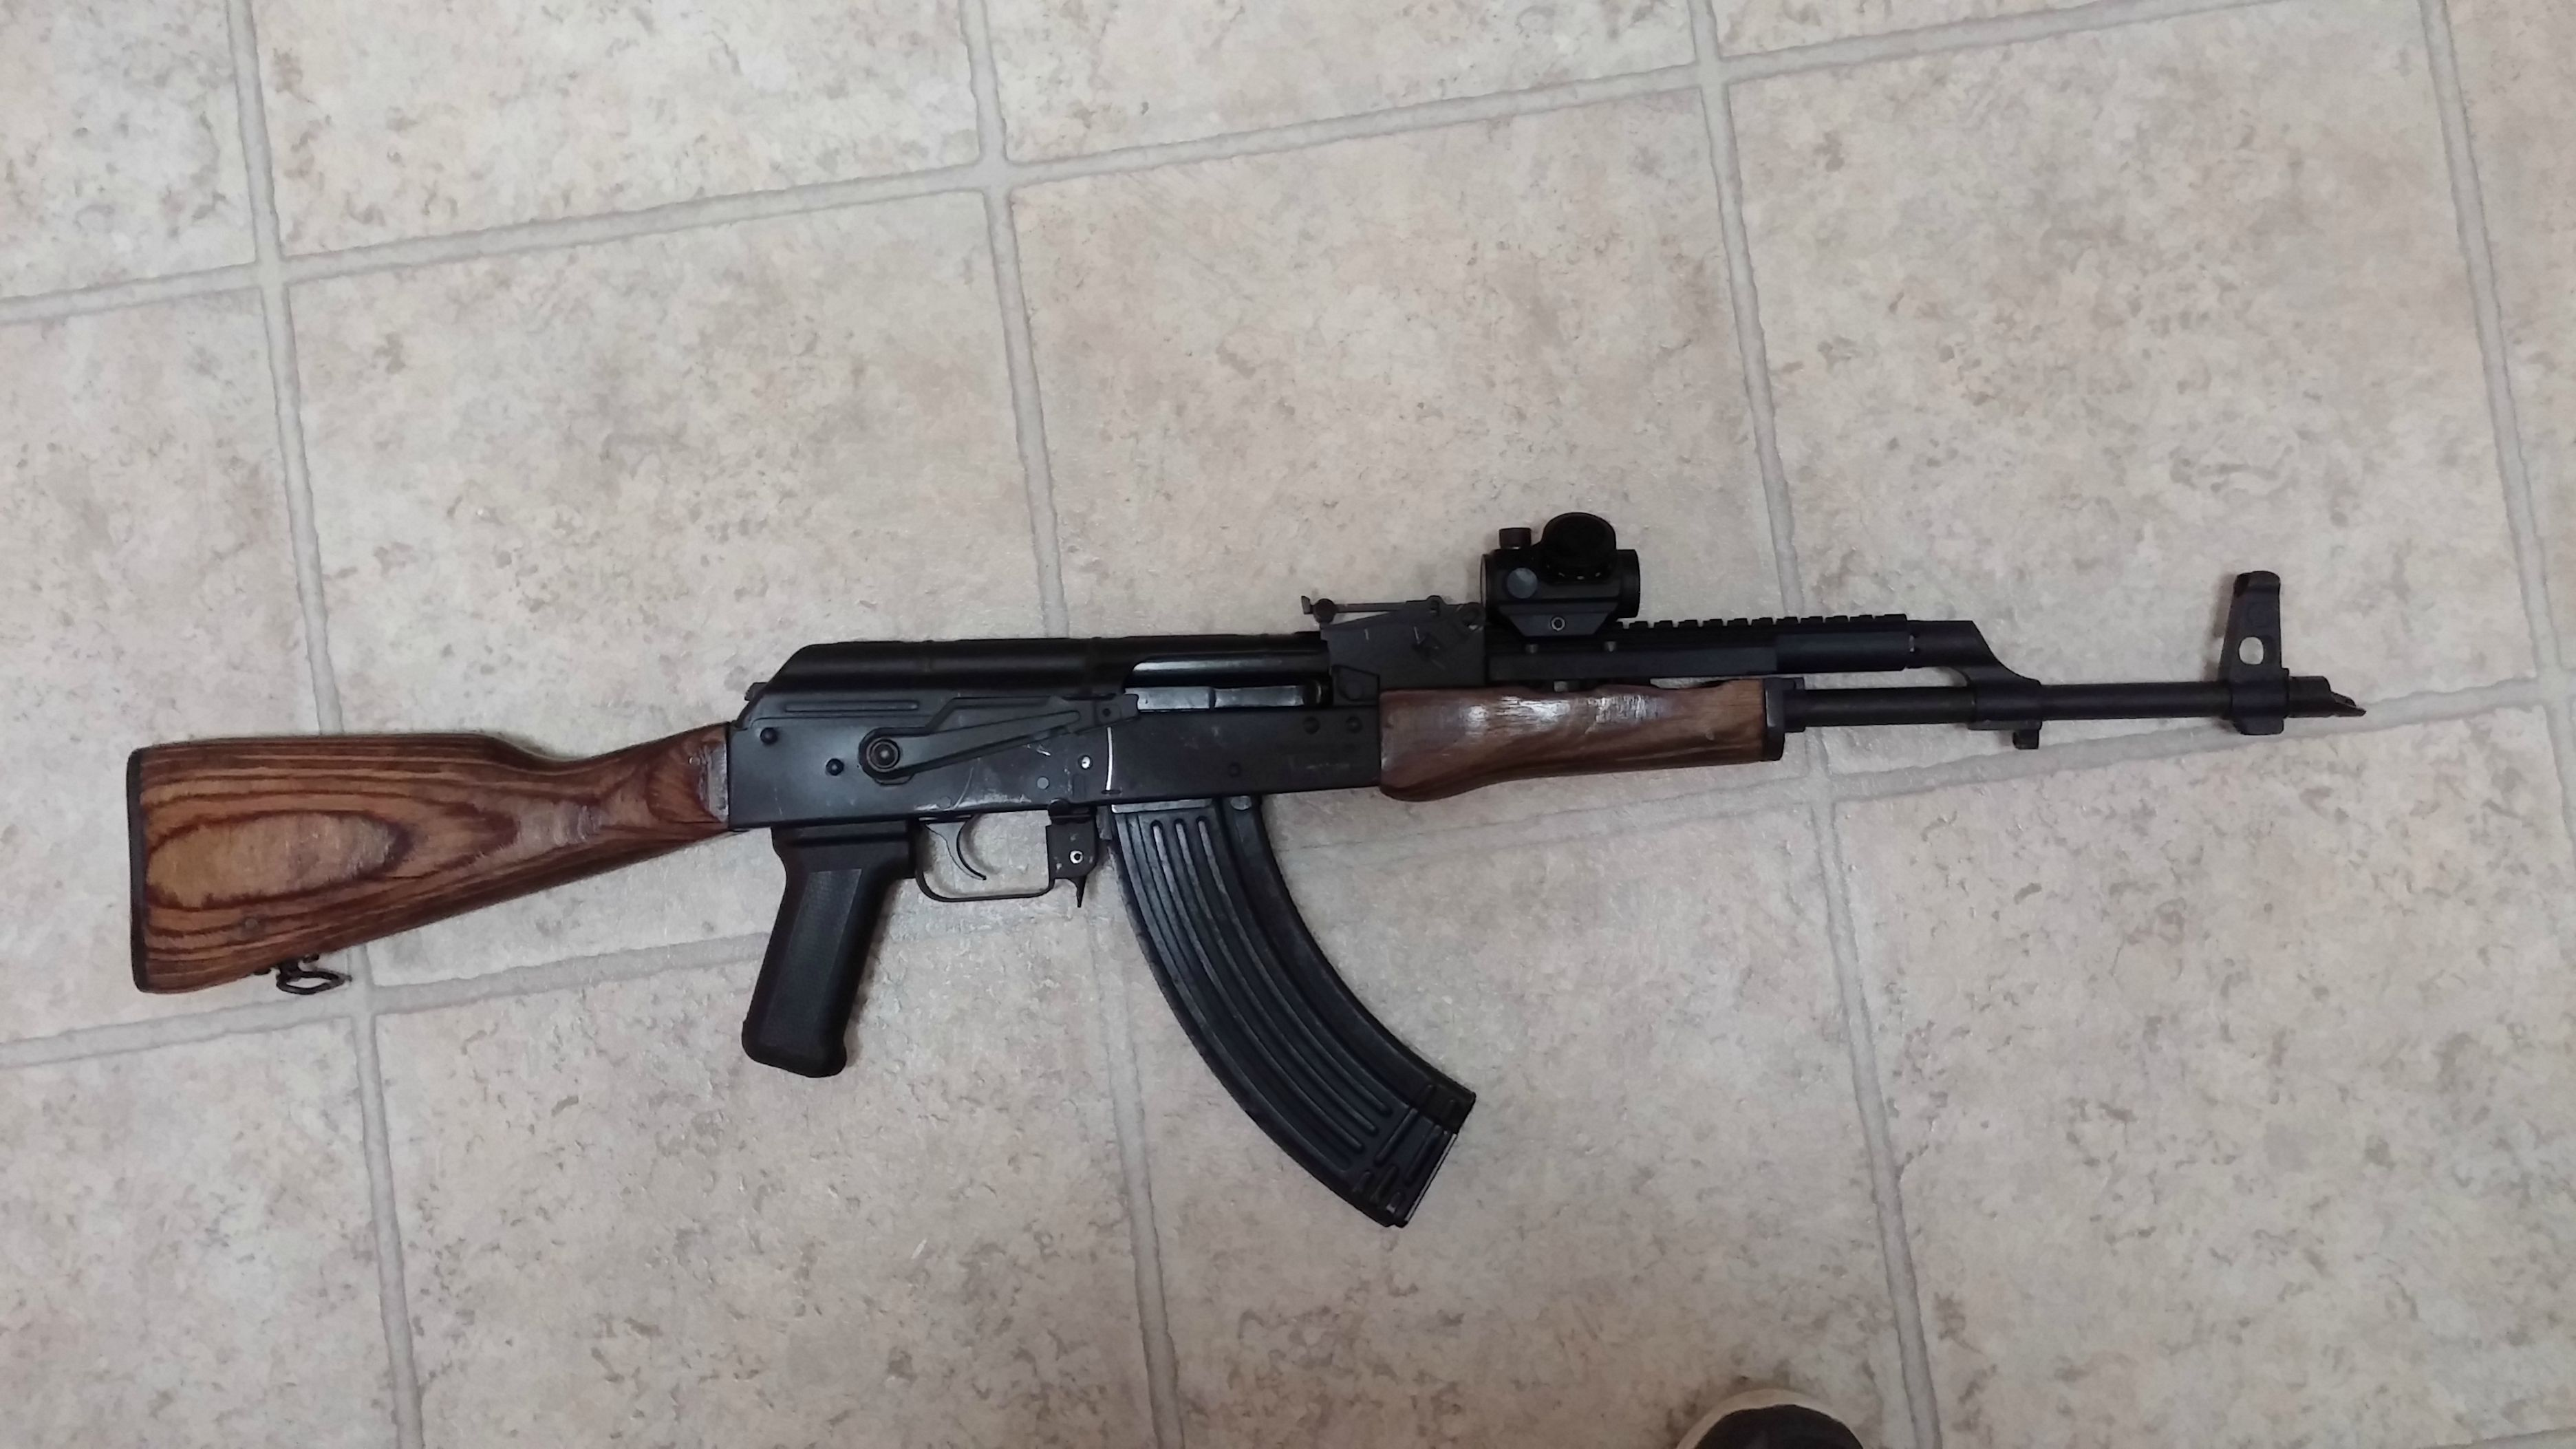 WASR 10/63 with Ultimak, ammo, mags, more: $600 For Sale or Trade